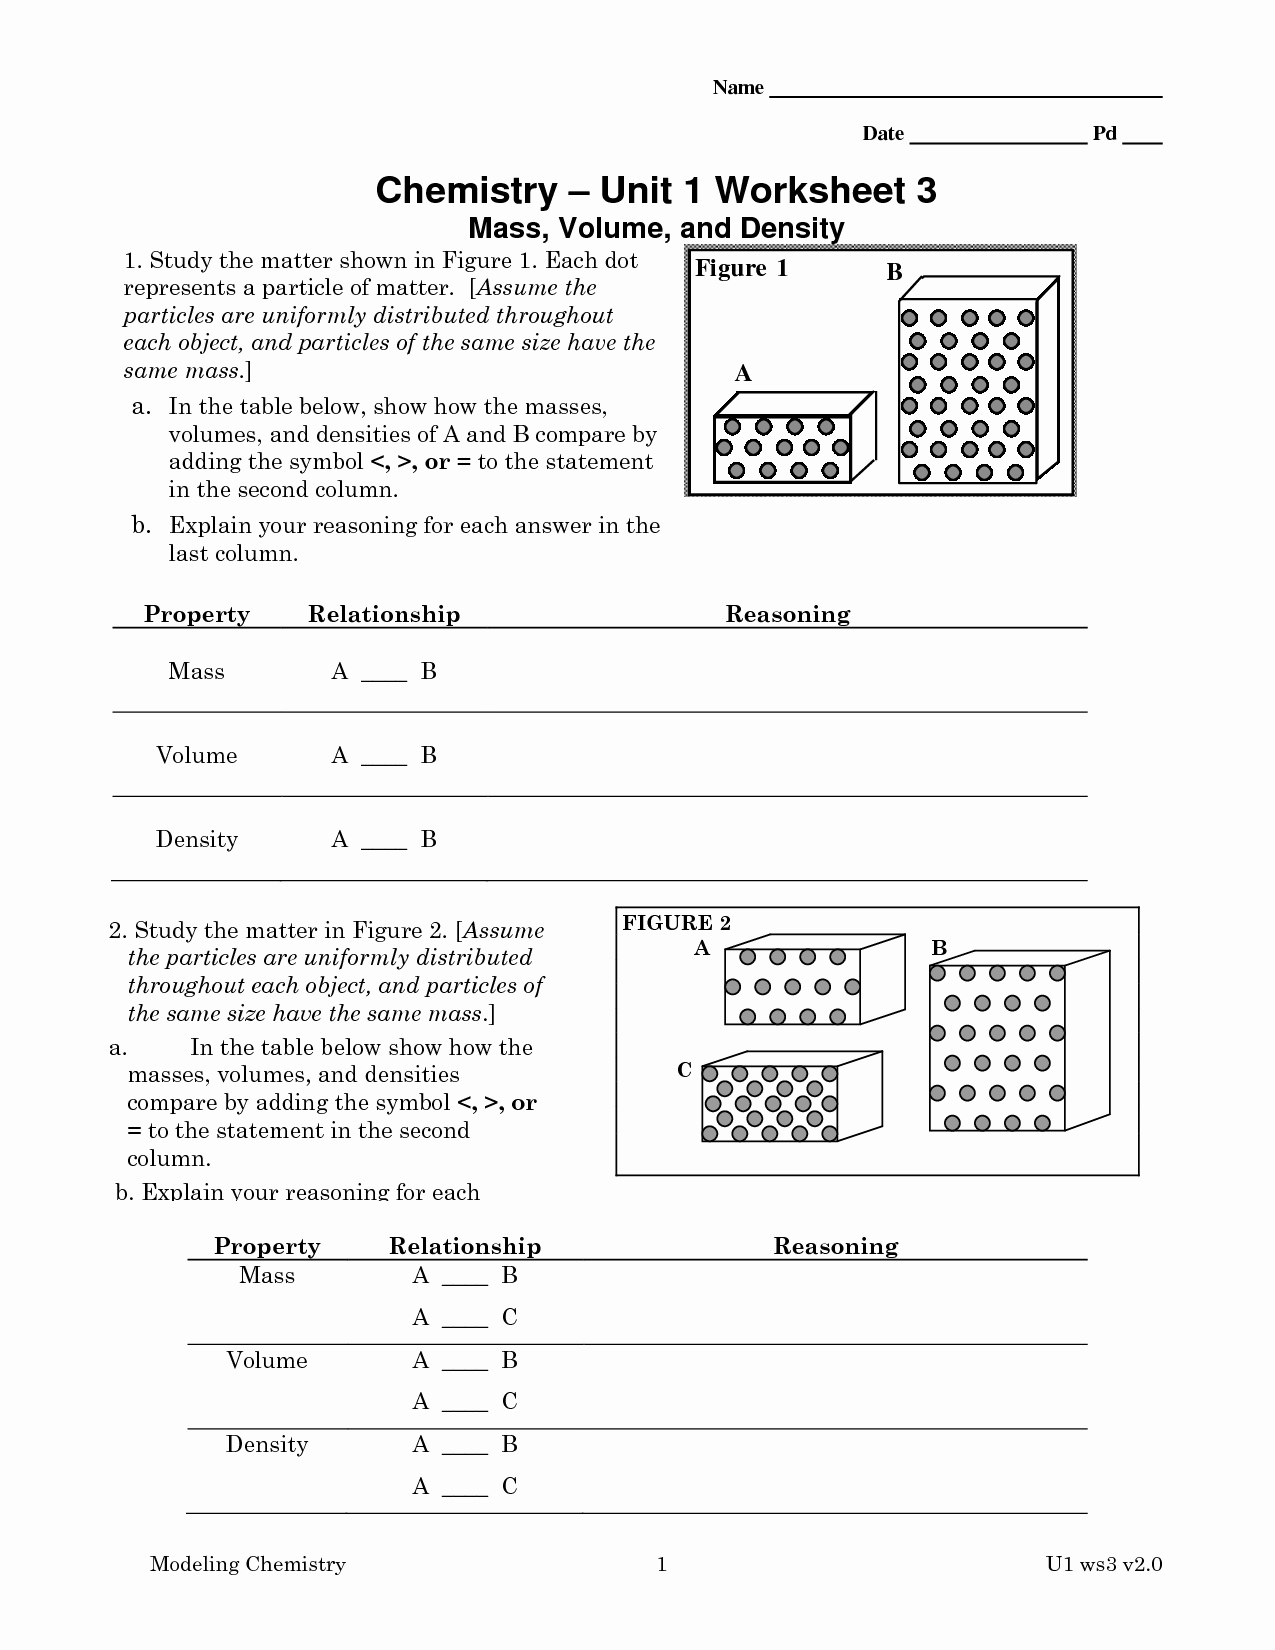 Chemistry Worksheet Matter 1 Answers Luxury Chemistry 1 Worksheet Classification Matter and Changes